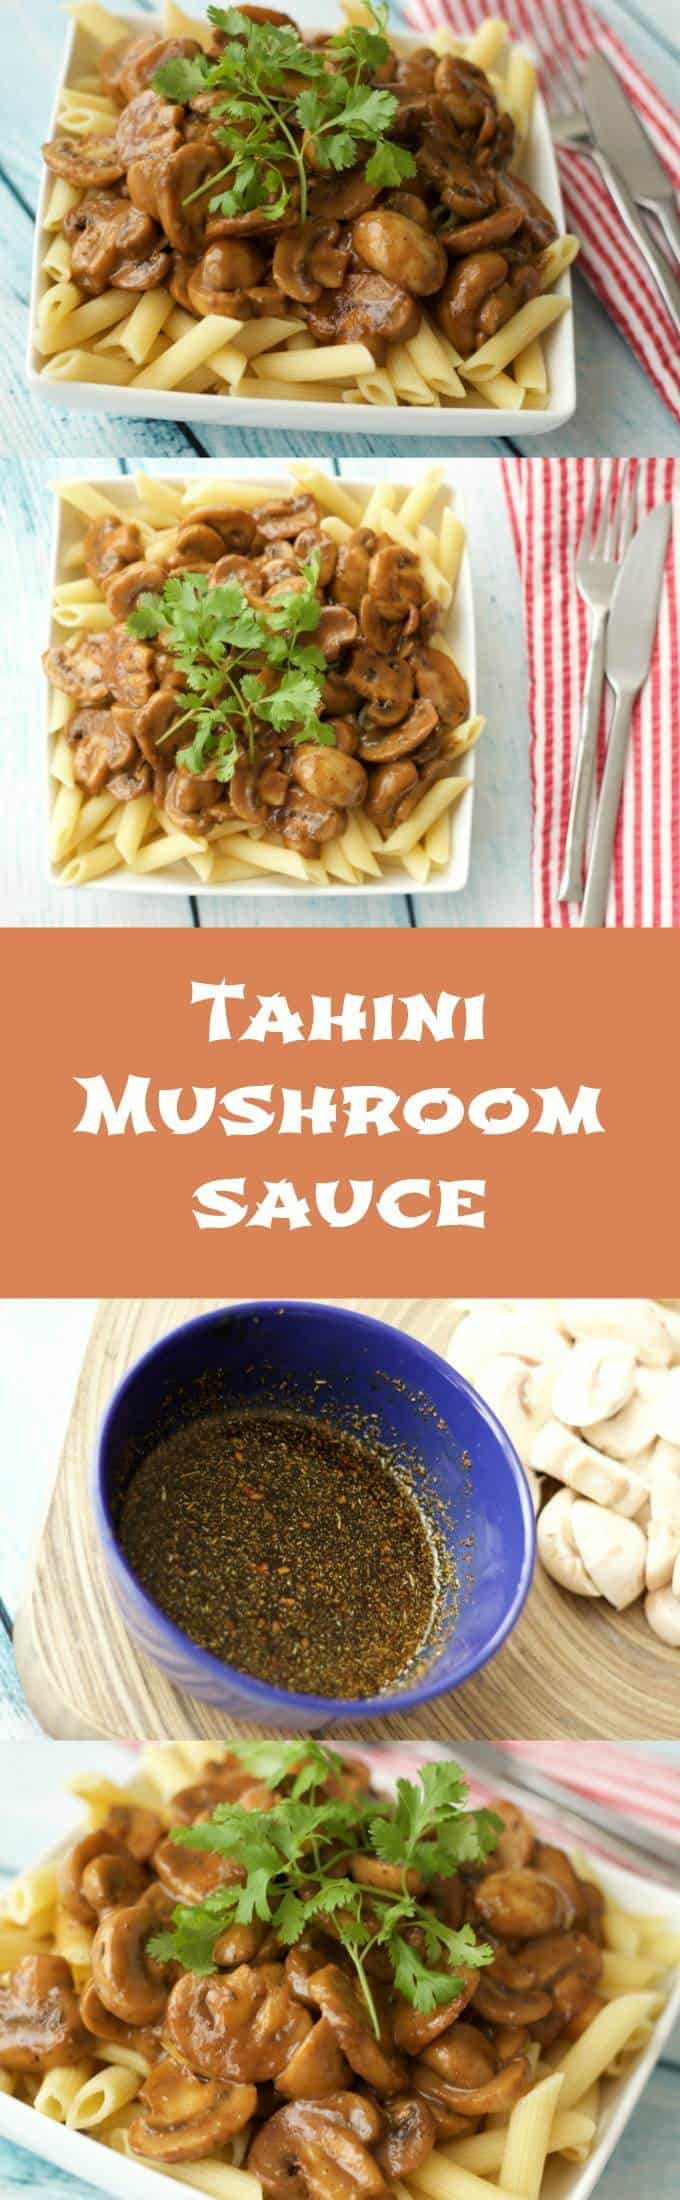 Rich and Creamy Tahini Mushroom Sauce over Penne #vegan #lovingitvegan